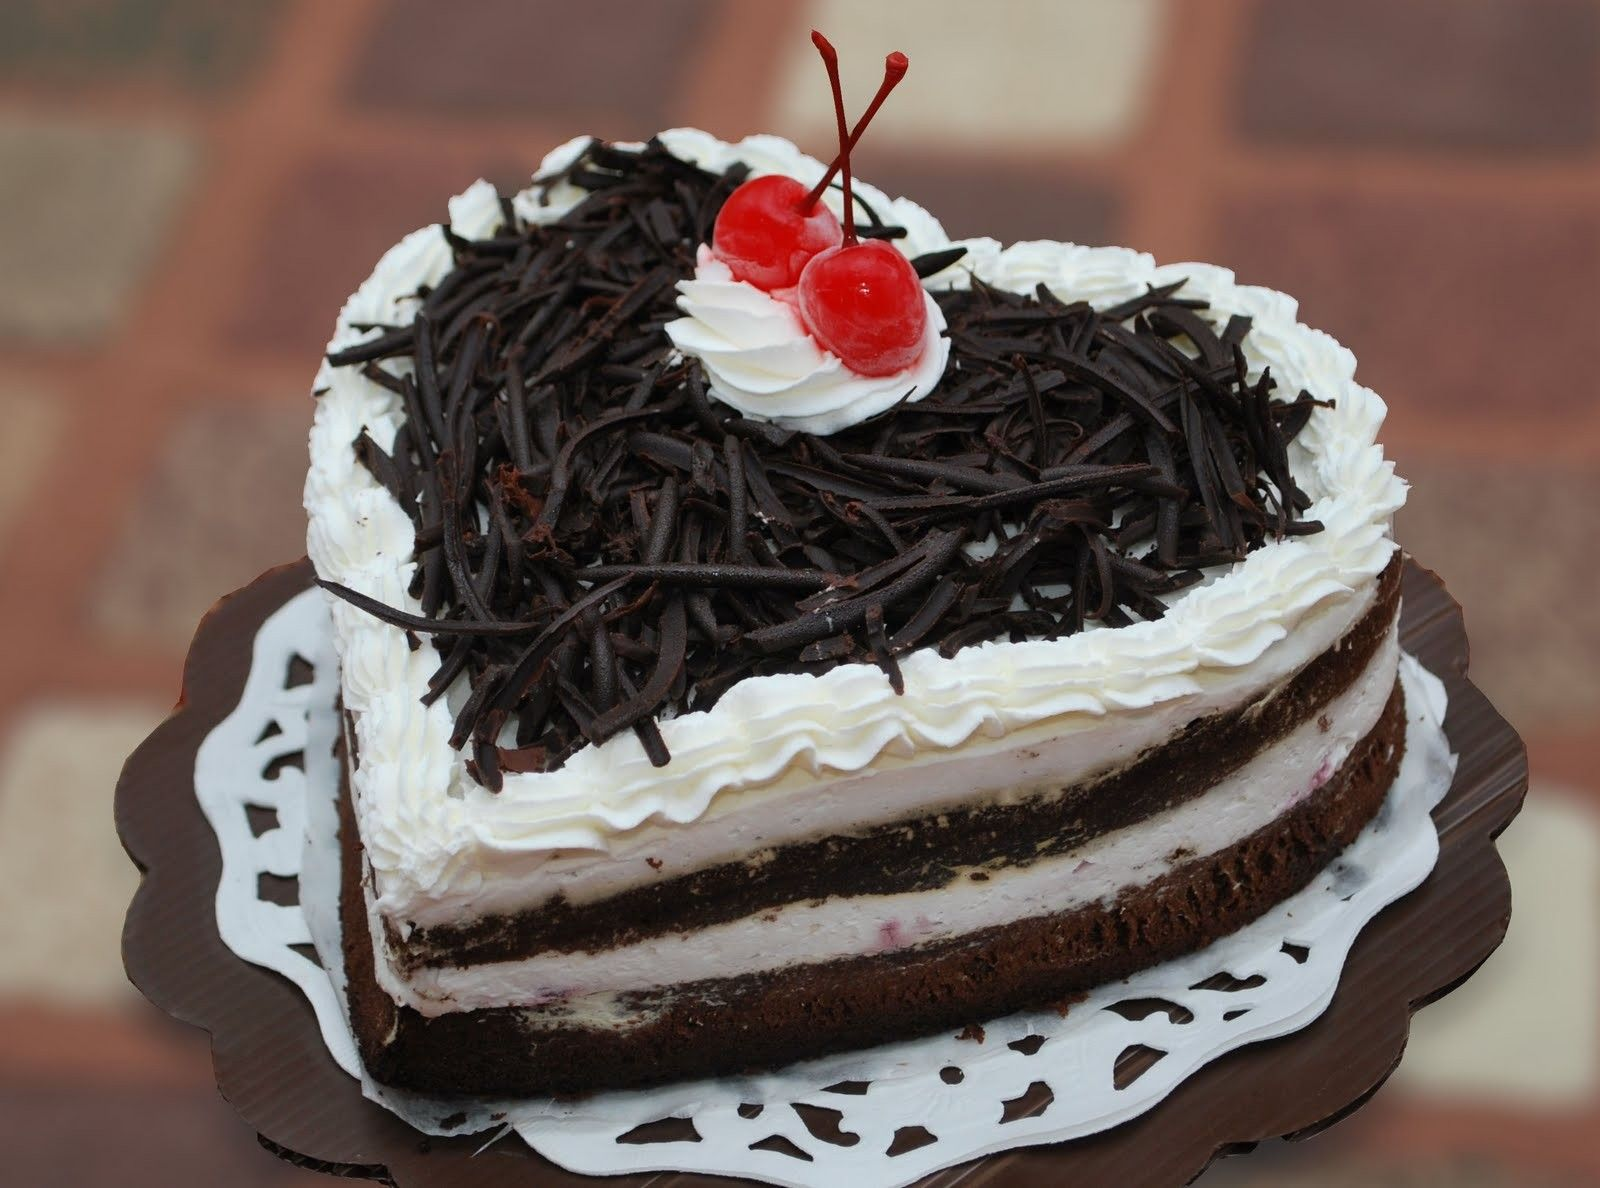 heart_shape_black_forest_cake 1 600×1 188 pixels | pastry